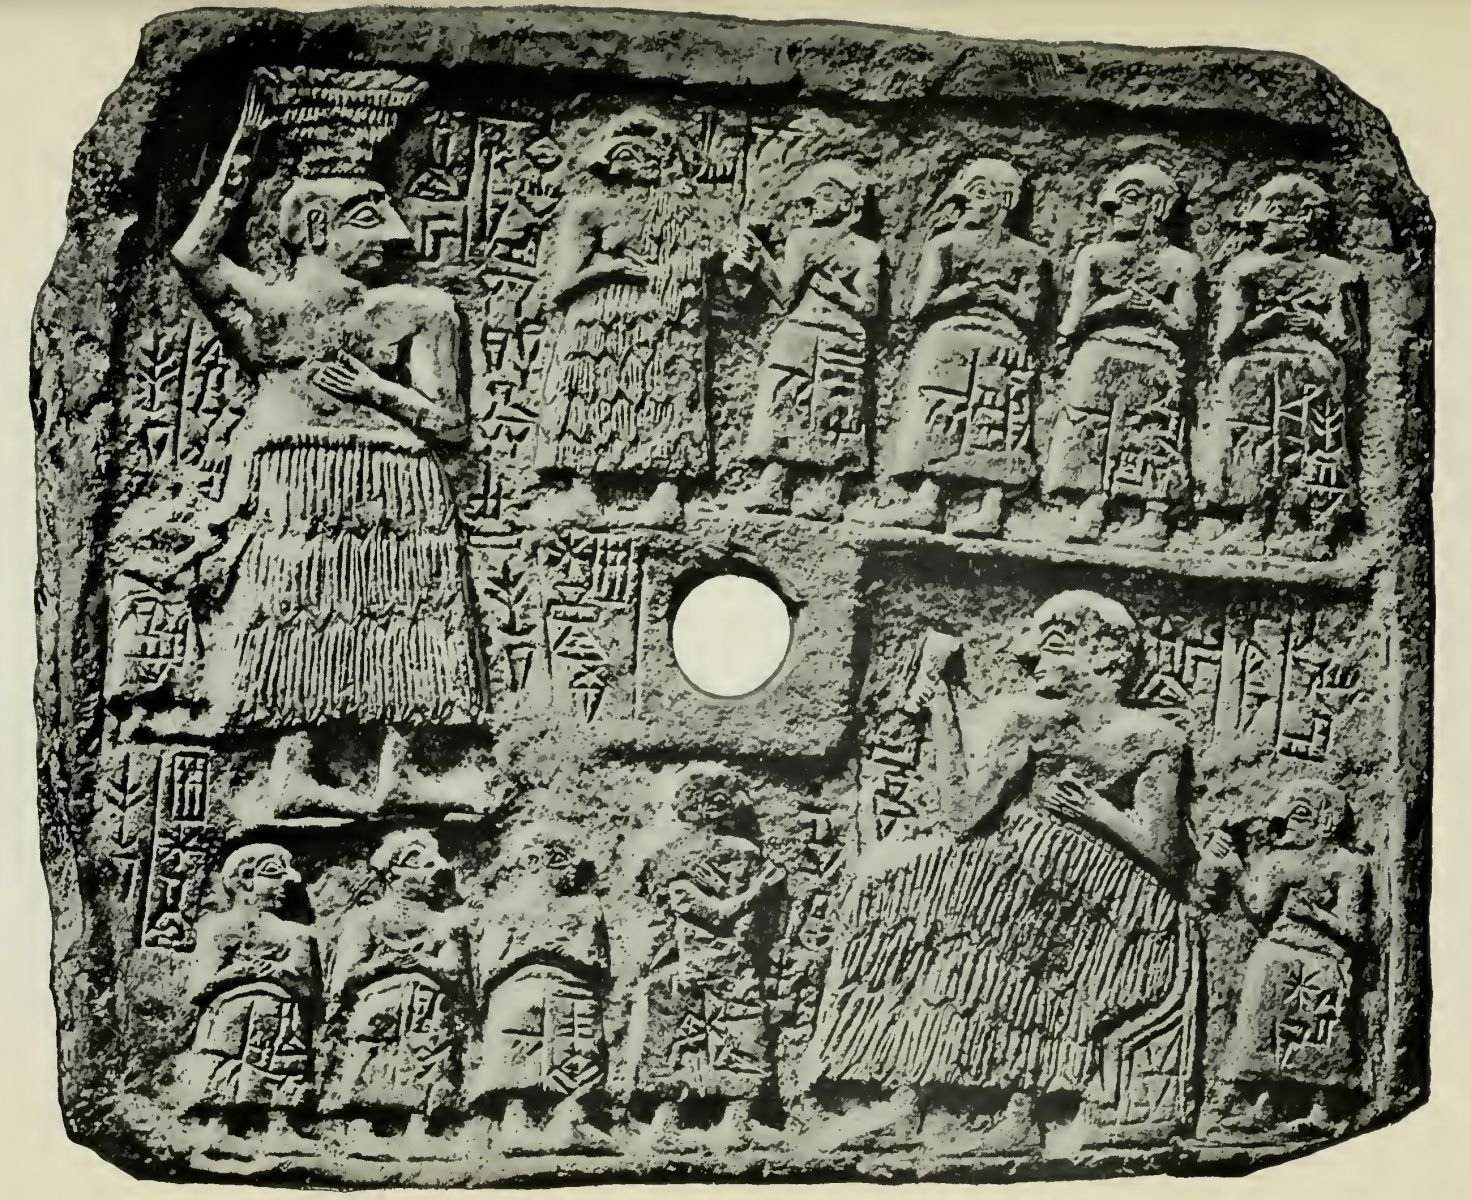 an introduction to the religion of the mesopotamian culture Click download or read online button to get an introduction to ancient mesopotamian religion into mesopotamian culture and introduction to the.